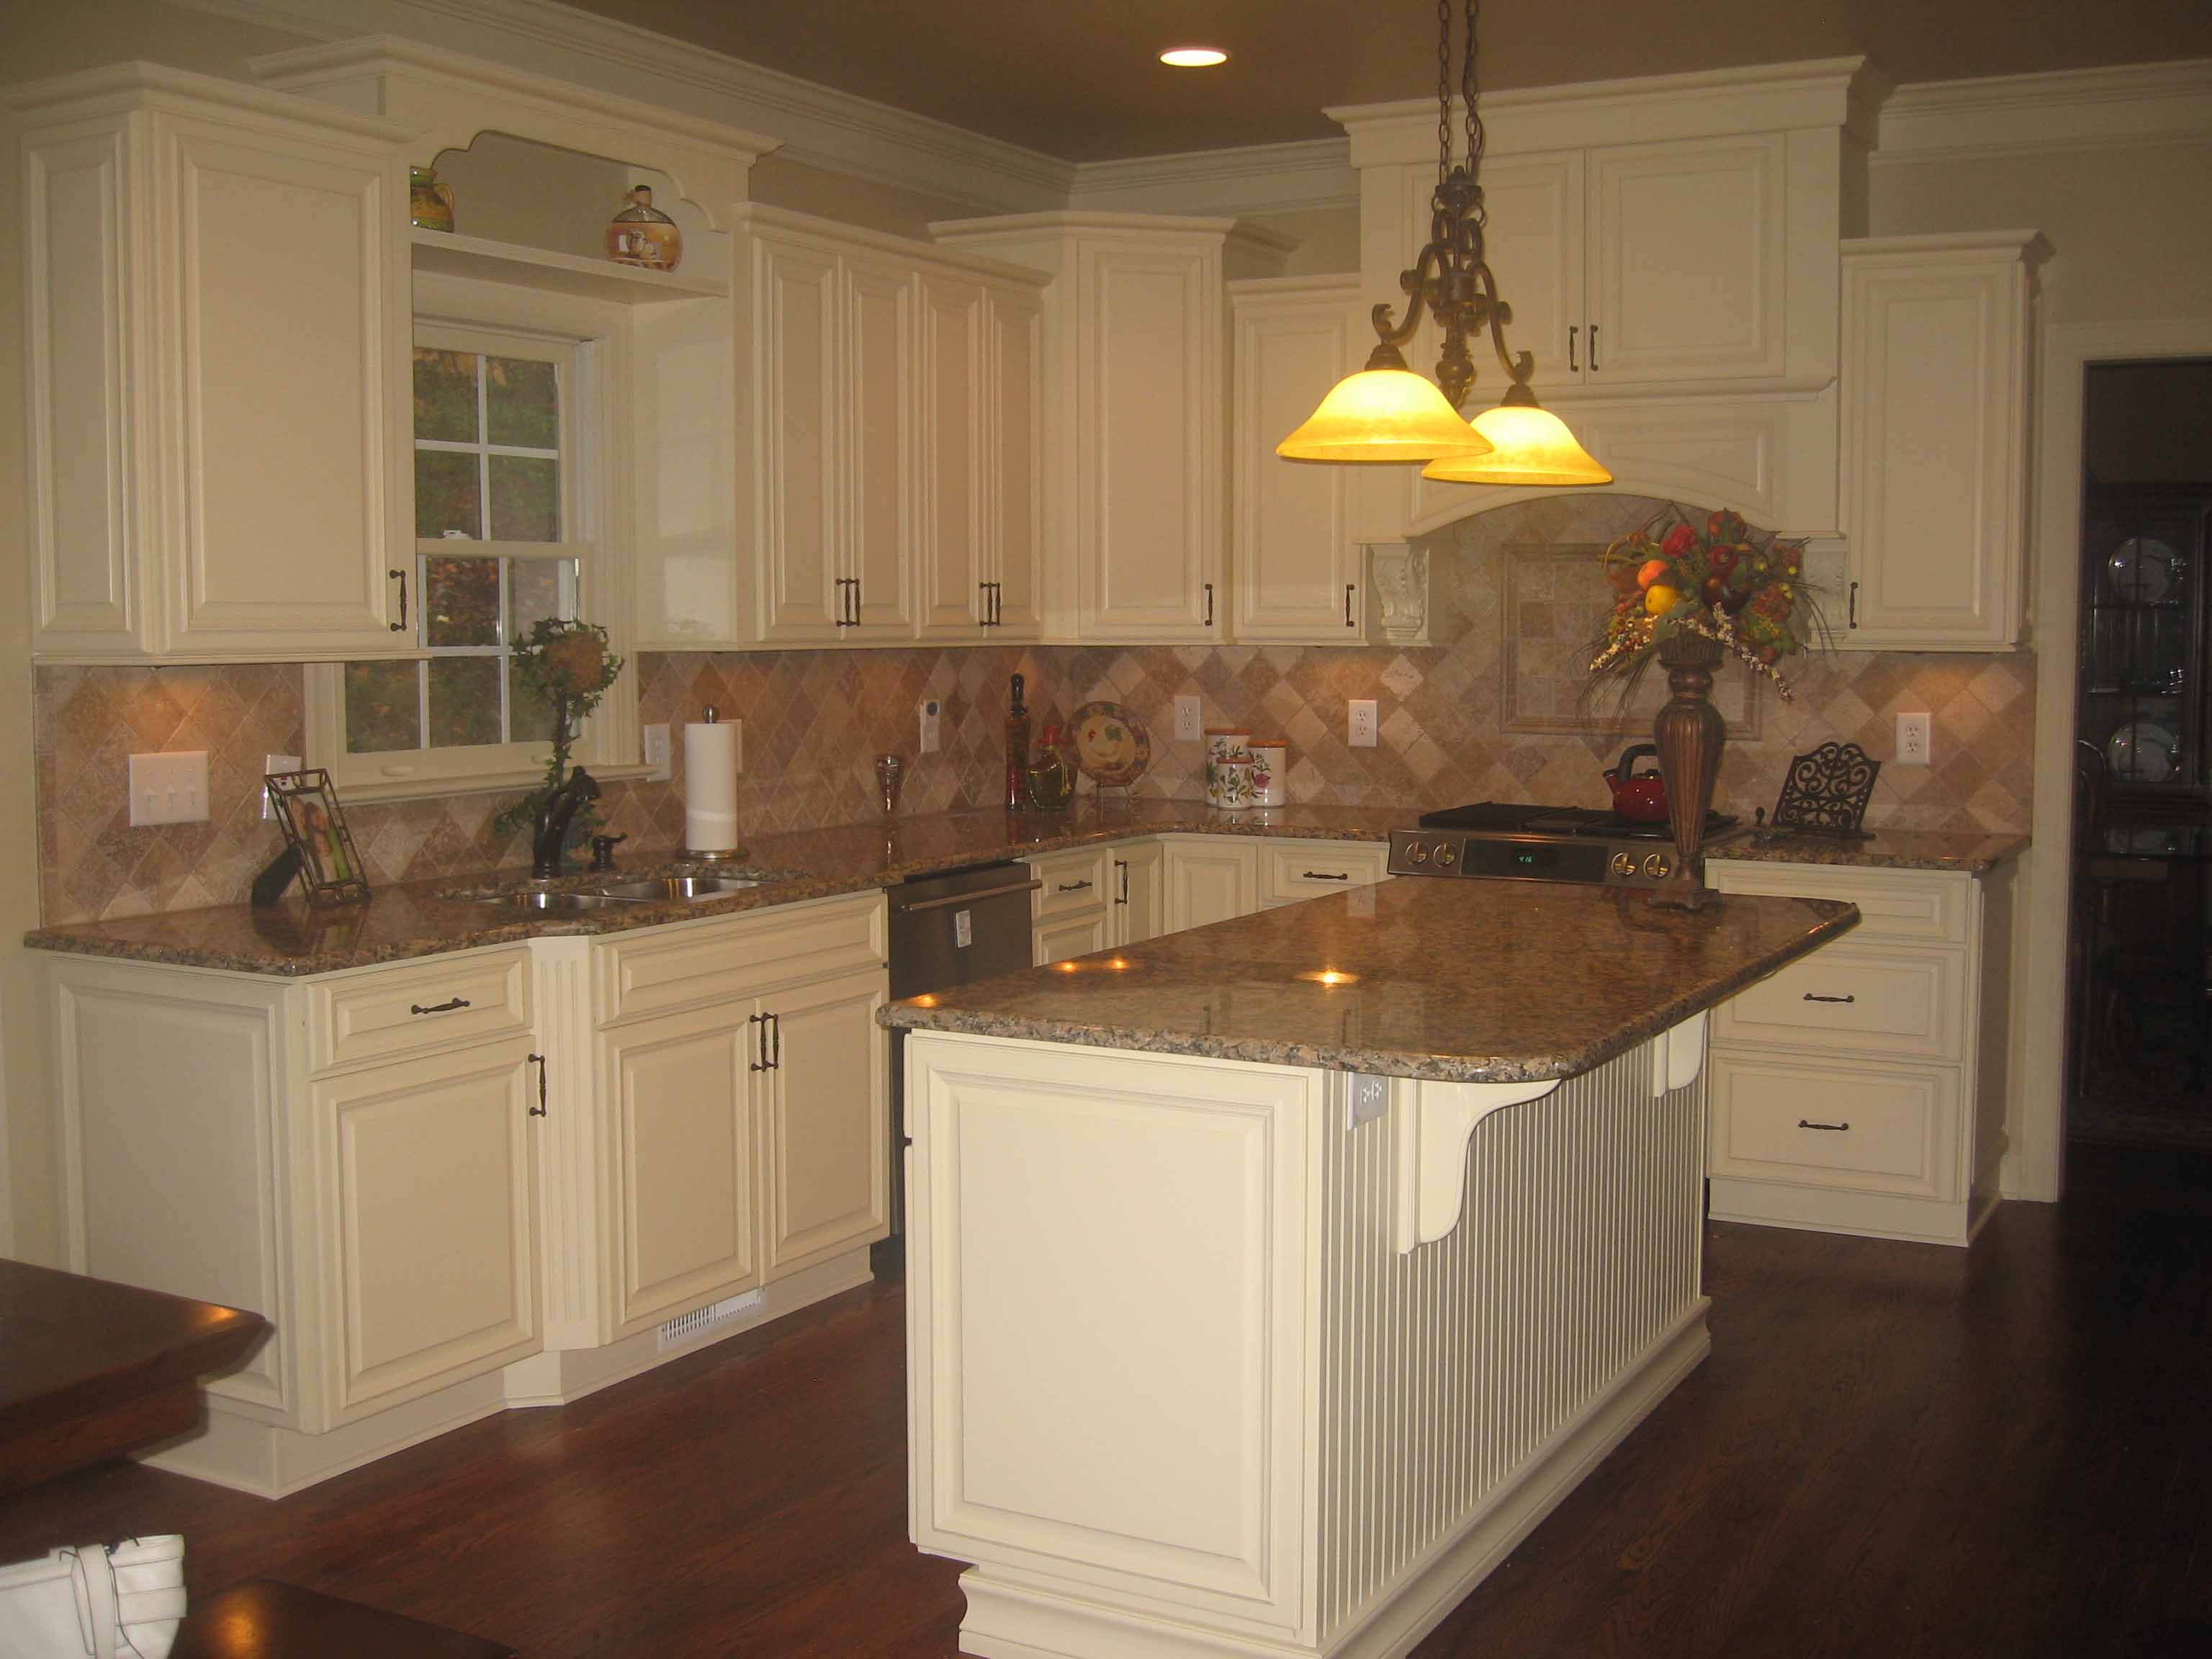 onlinecabinetsdirect online kitchen cabinets Attaberry 4 White Shaker IMG copy